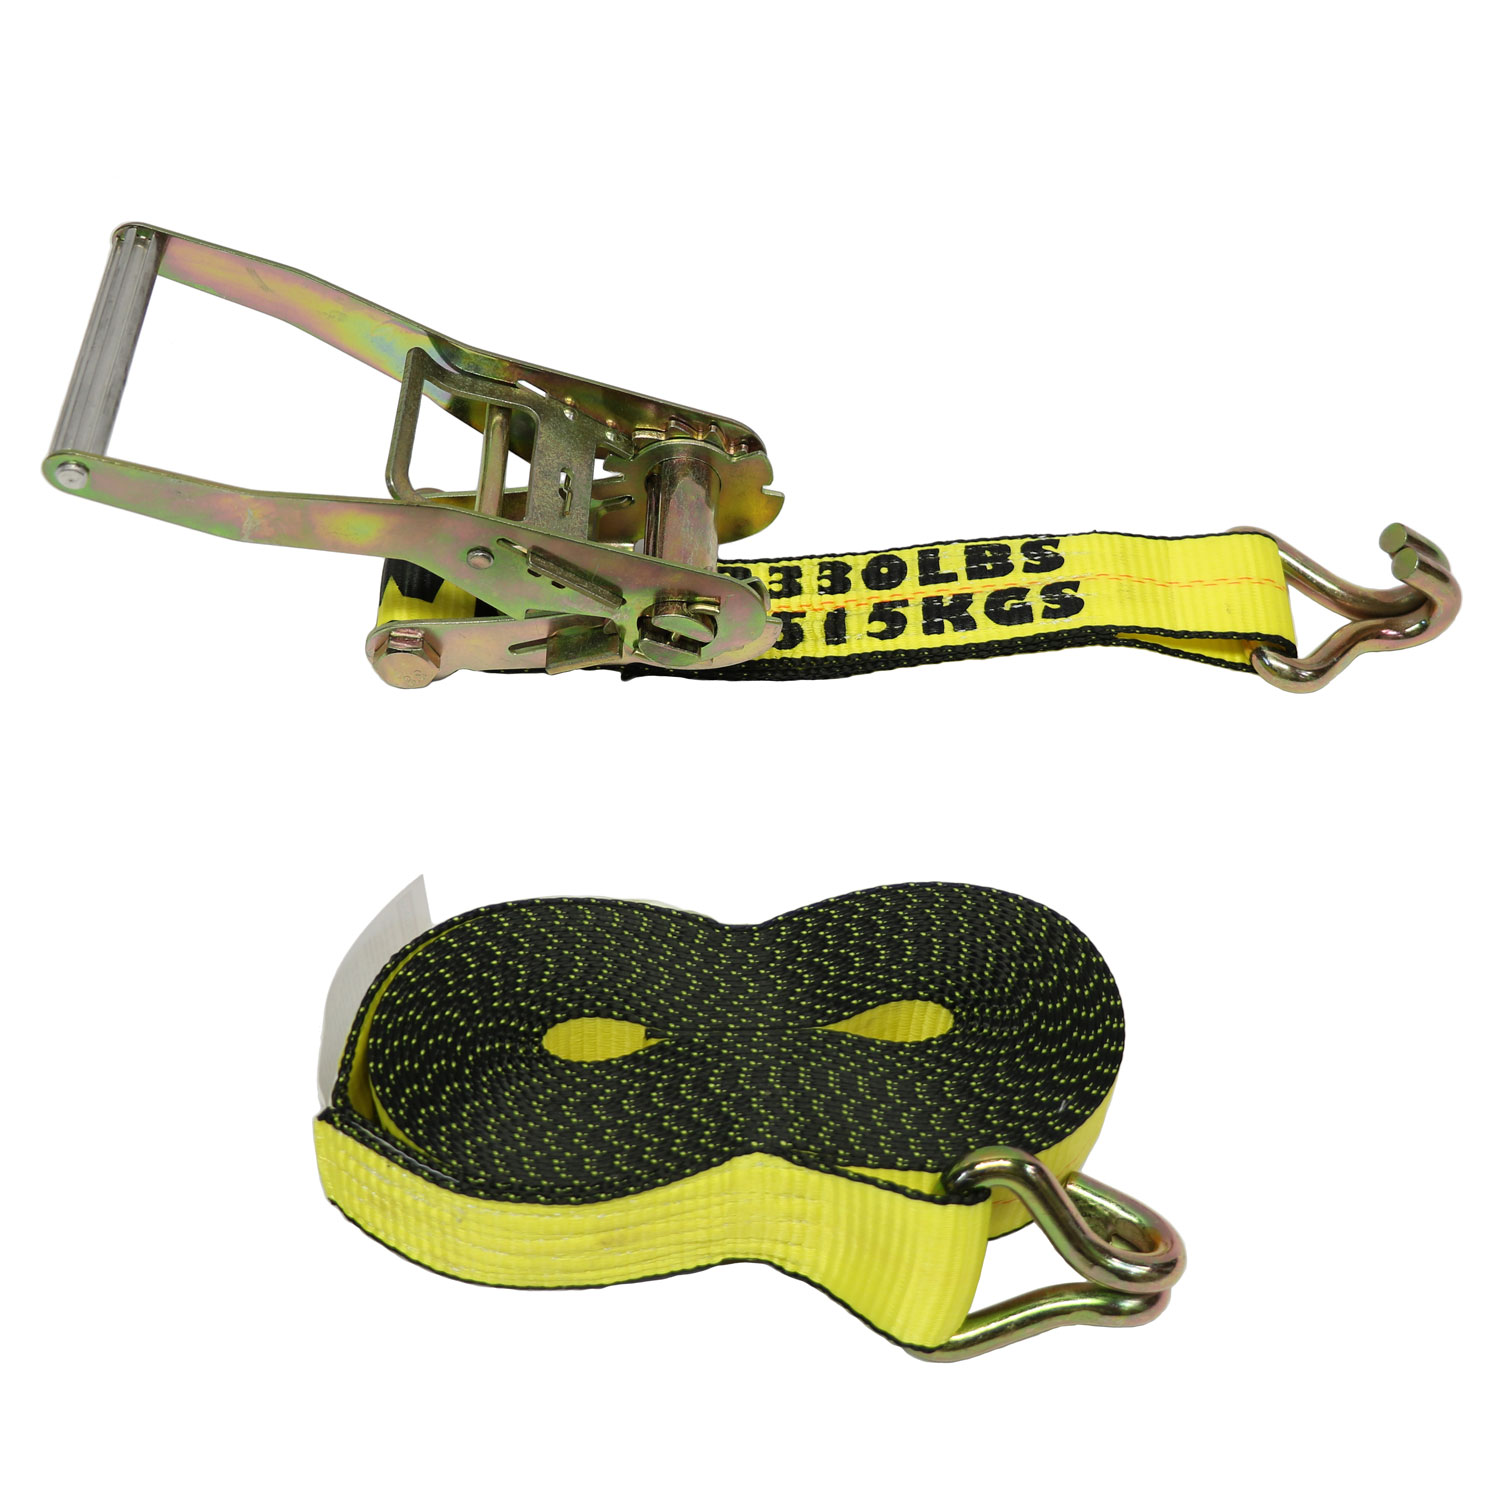 "2"" X 27' Tie Down Assembly w/ Long, Wide Handle Ratchet and Heavy Duty Wire Hooks Each End Image 1"